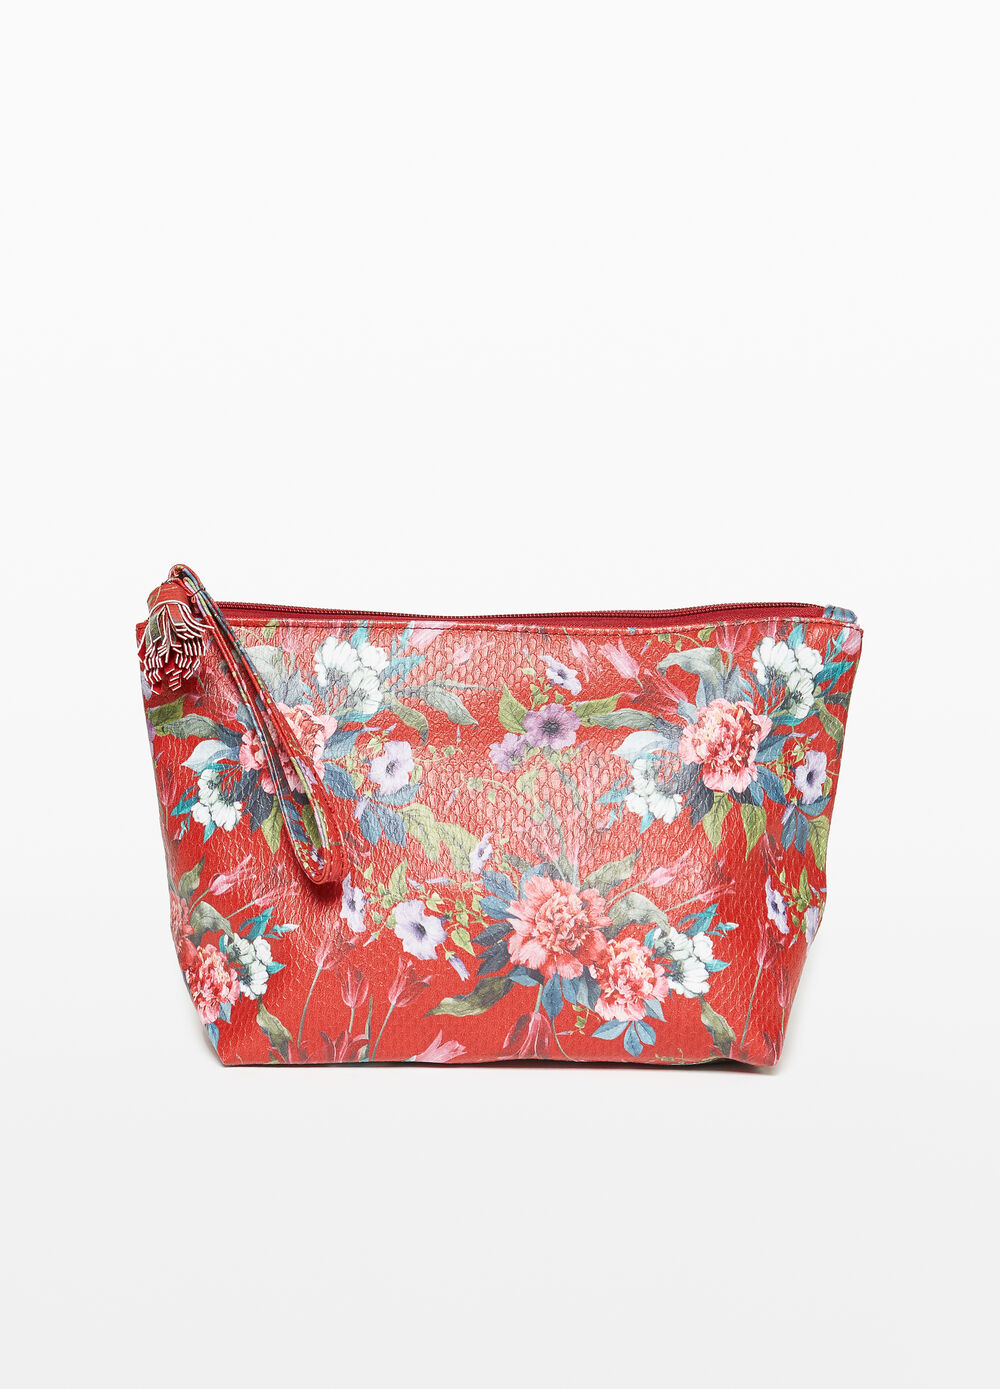 Floral beauty bag with snakeskin texture